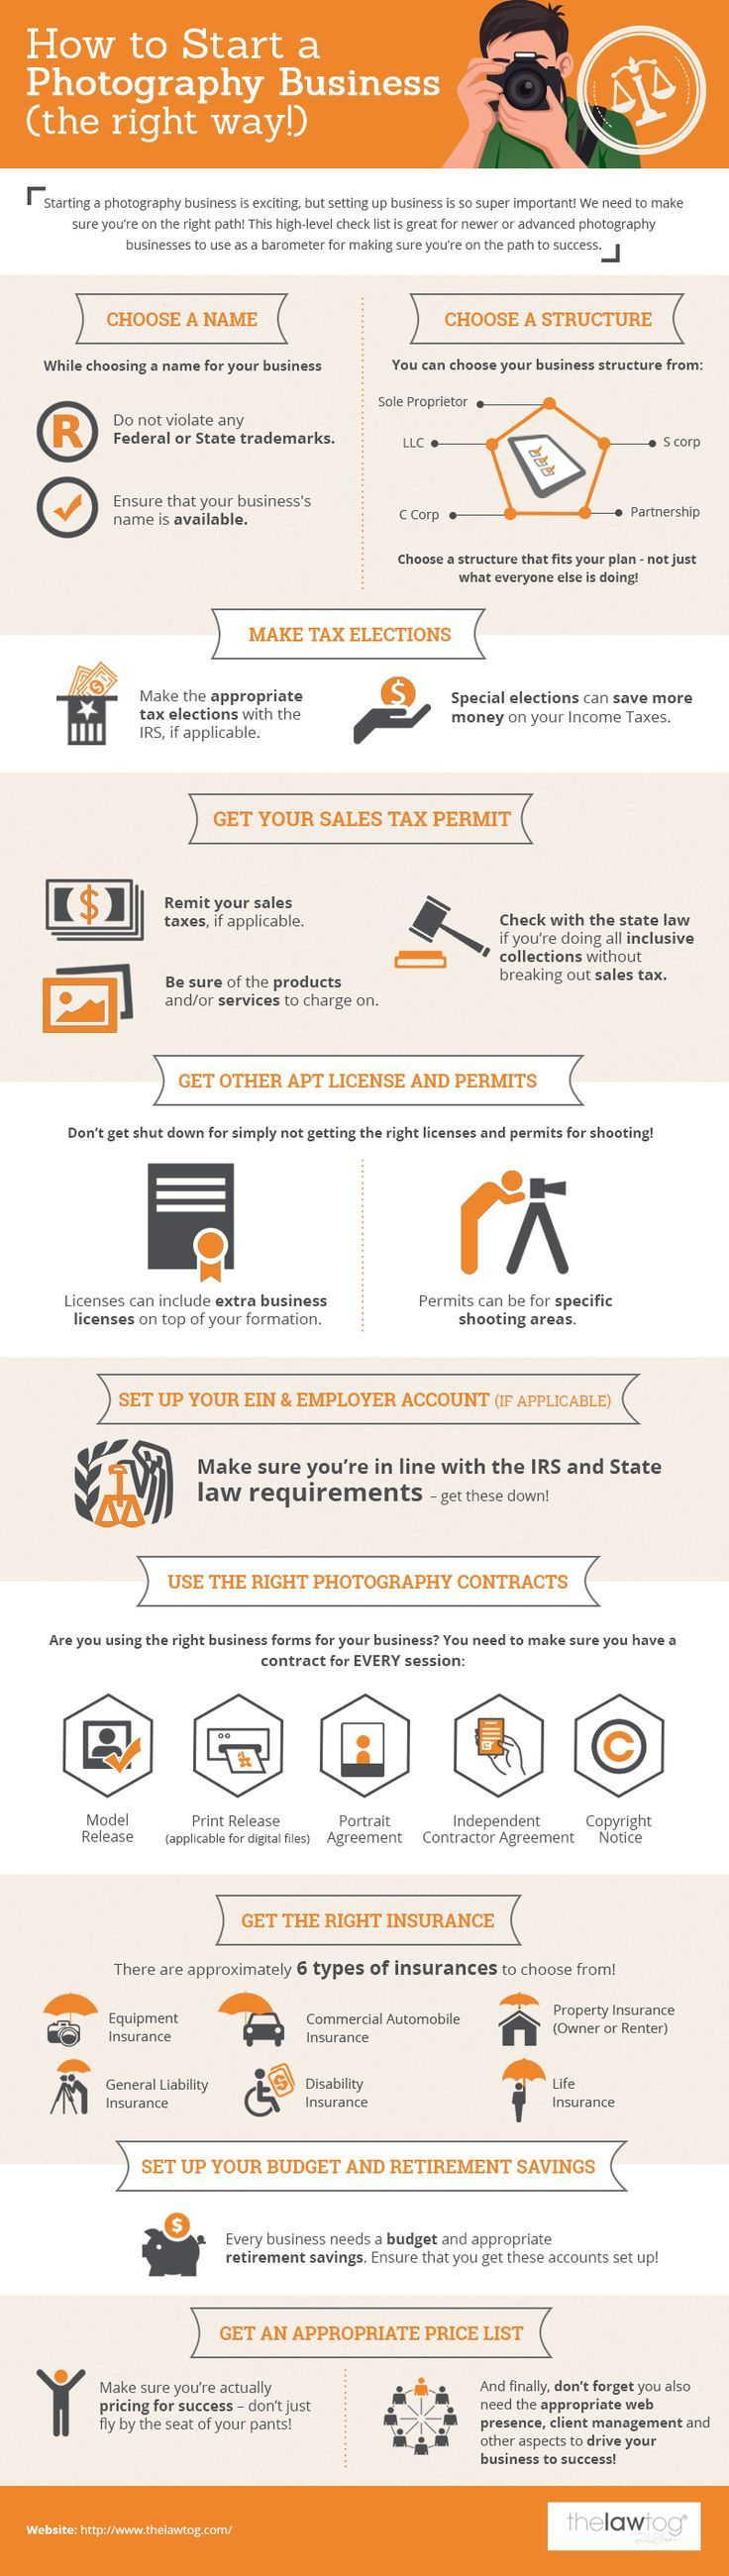 How to set up your photography business - however not just for newbies - great for experienced as a checklist as well!